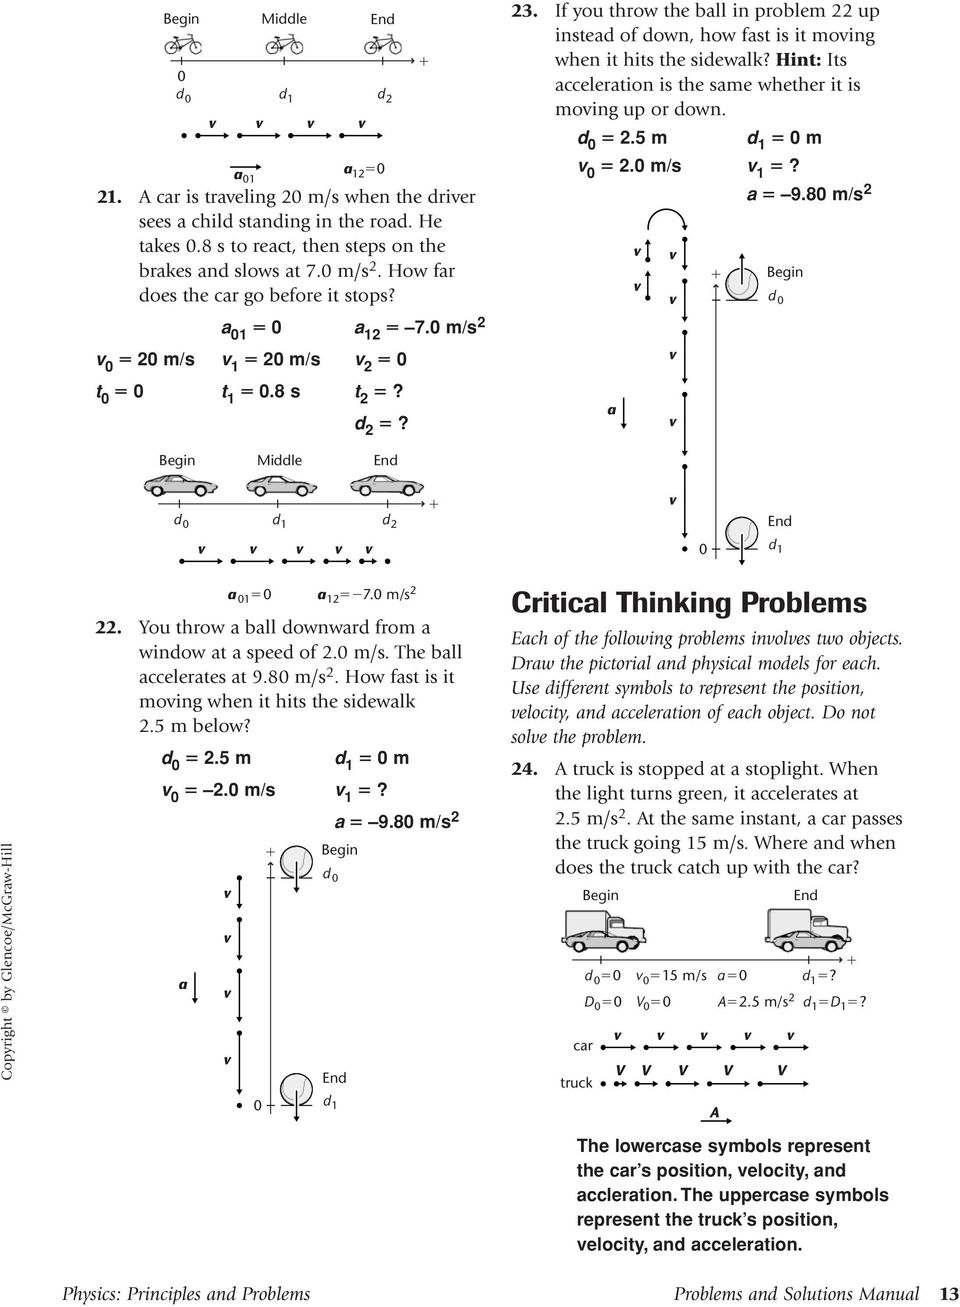 Physics: Principles and Problems Problems and Solutions Manual 13. If you  throw the ball in problem 22 up instead of down, how fast is